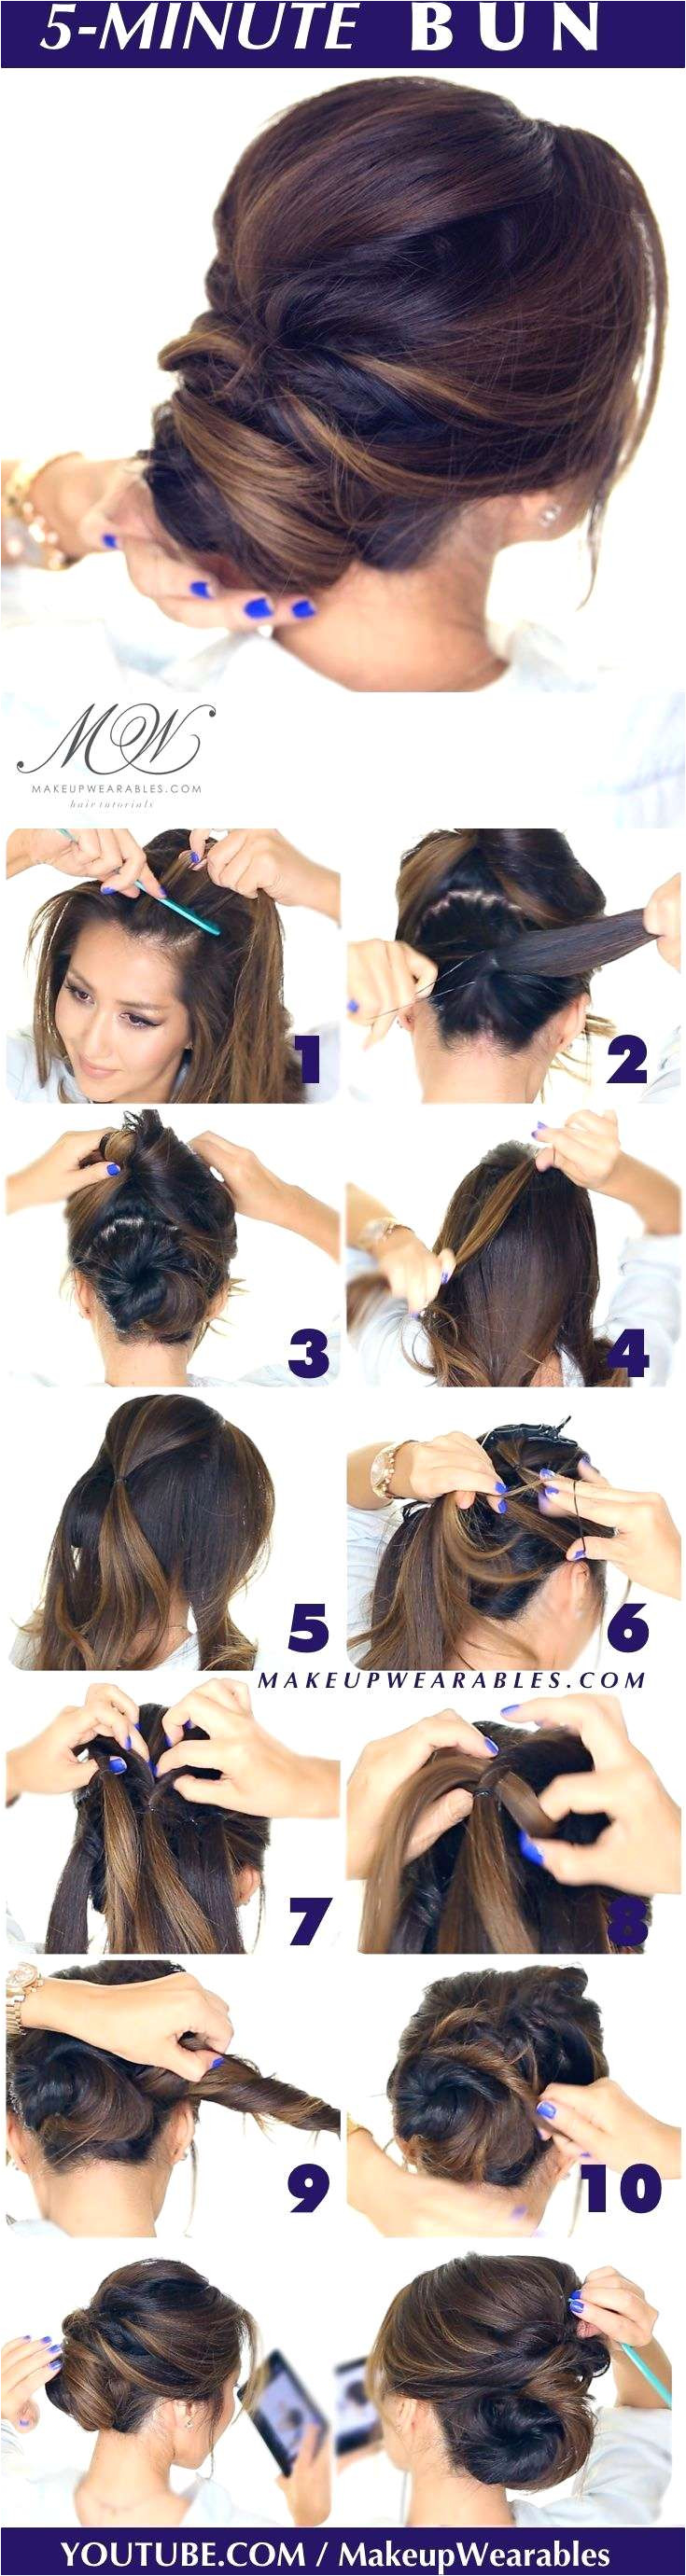 3 Easy Hairstyles for School Dailymotion Lovely 16 Elegant 3 Easy Hairstyles for School Dailymotion Pics